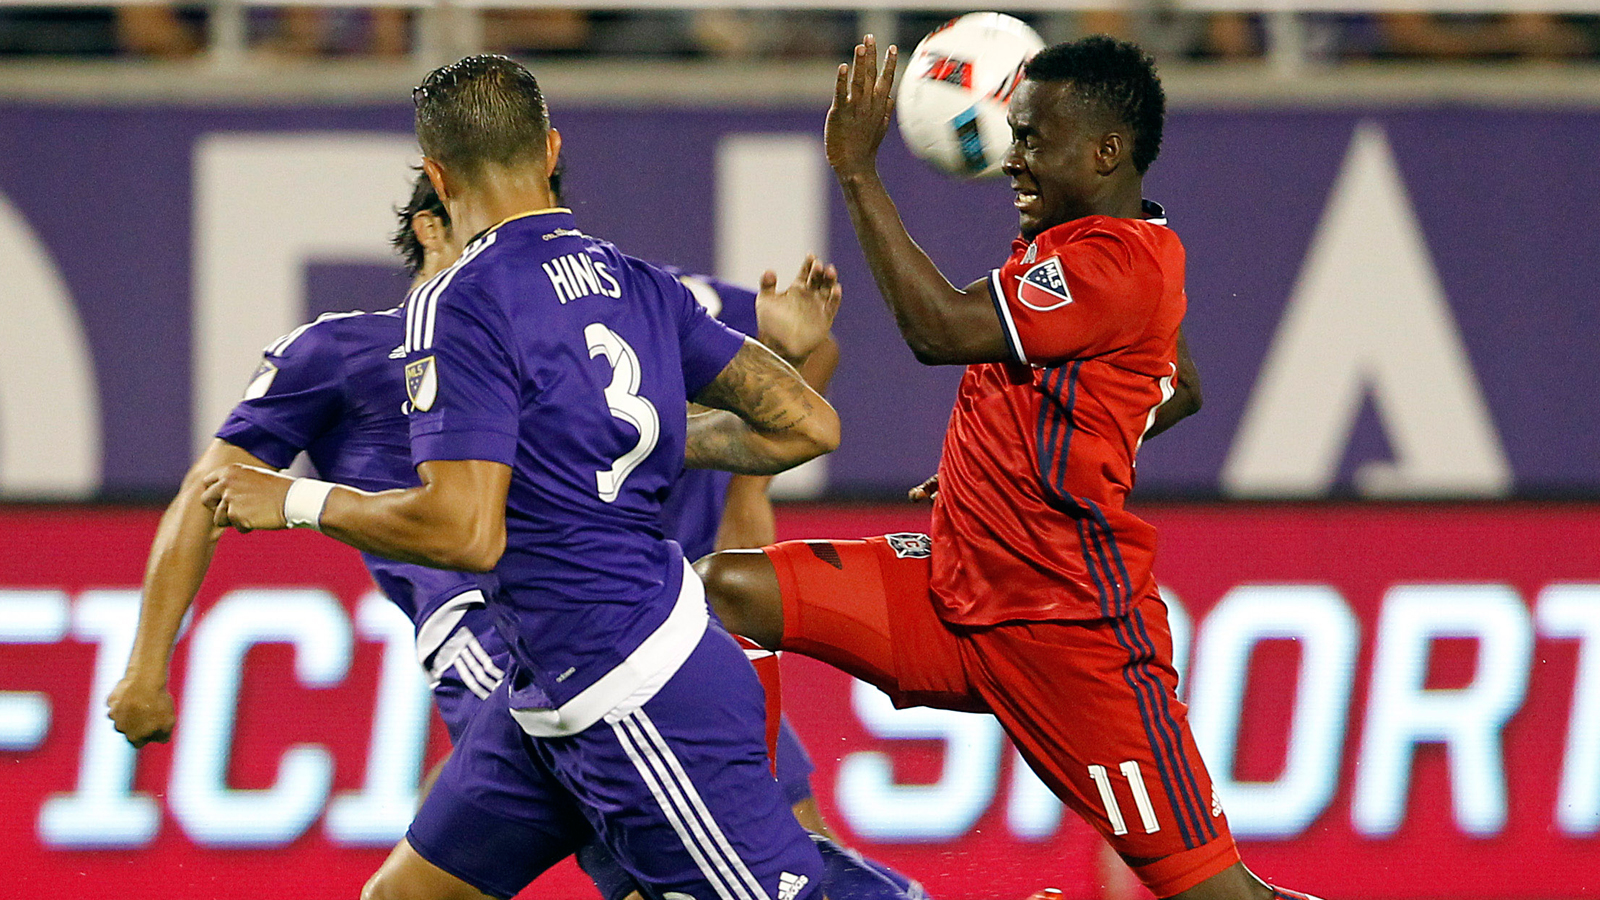 Cyle Larin scores quickly as Orlando City earns draw with Chicago Fire